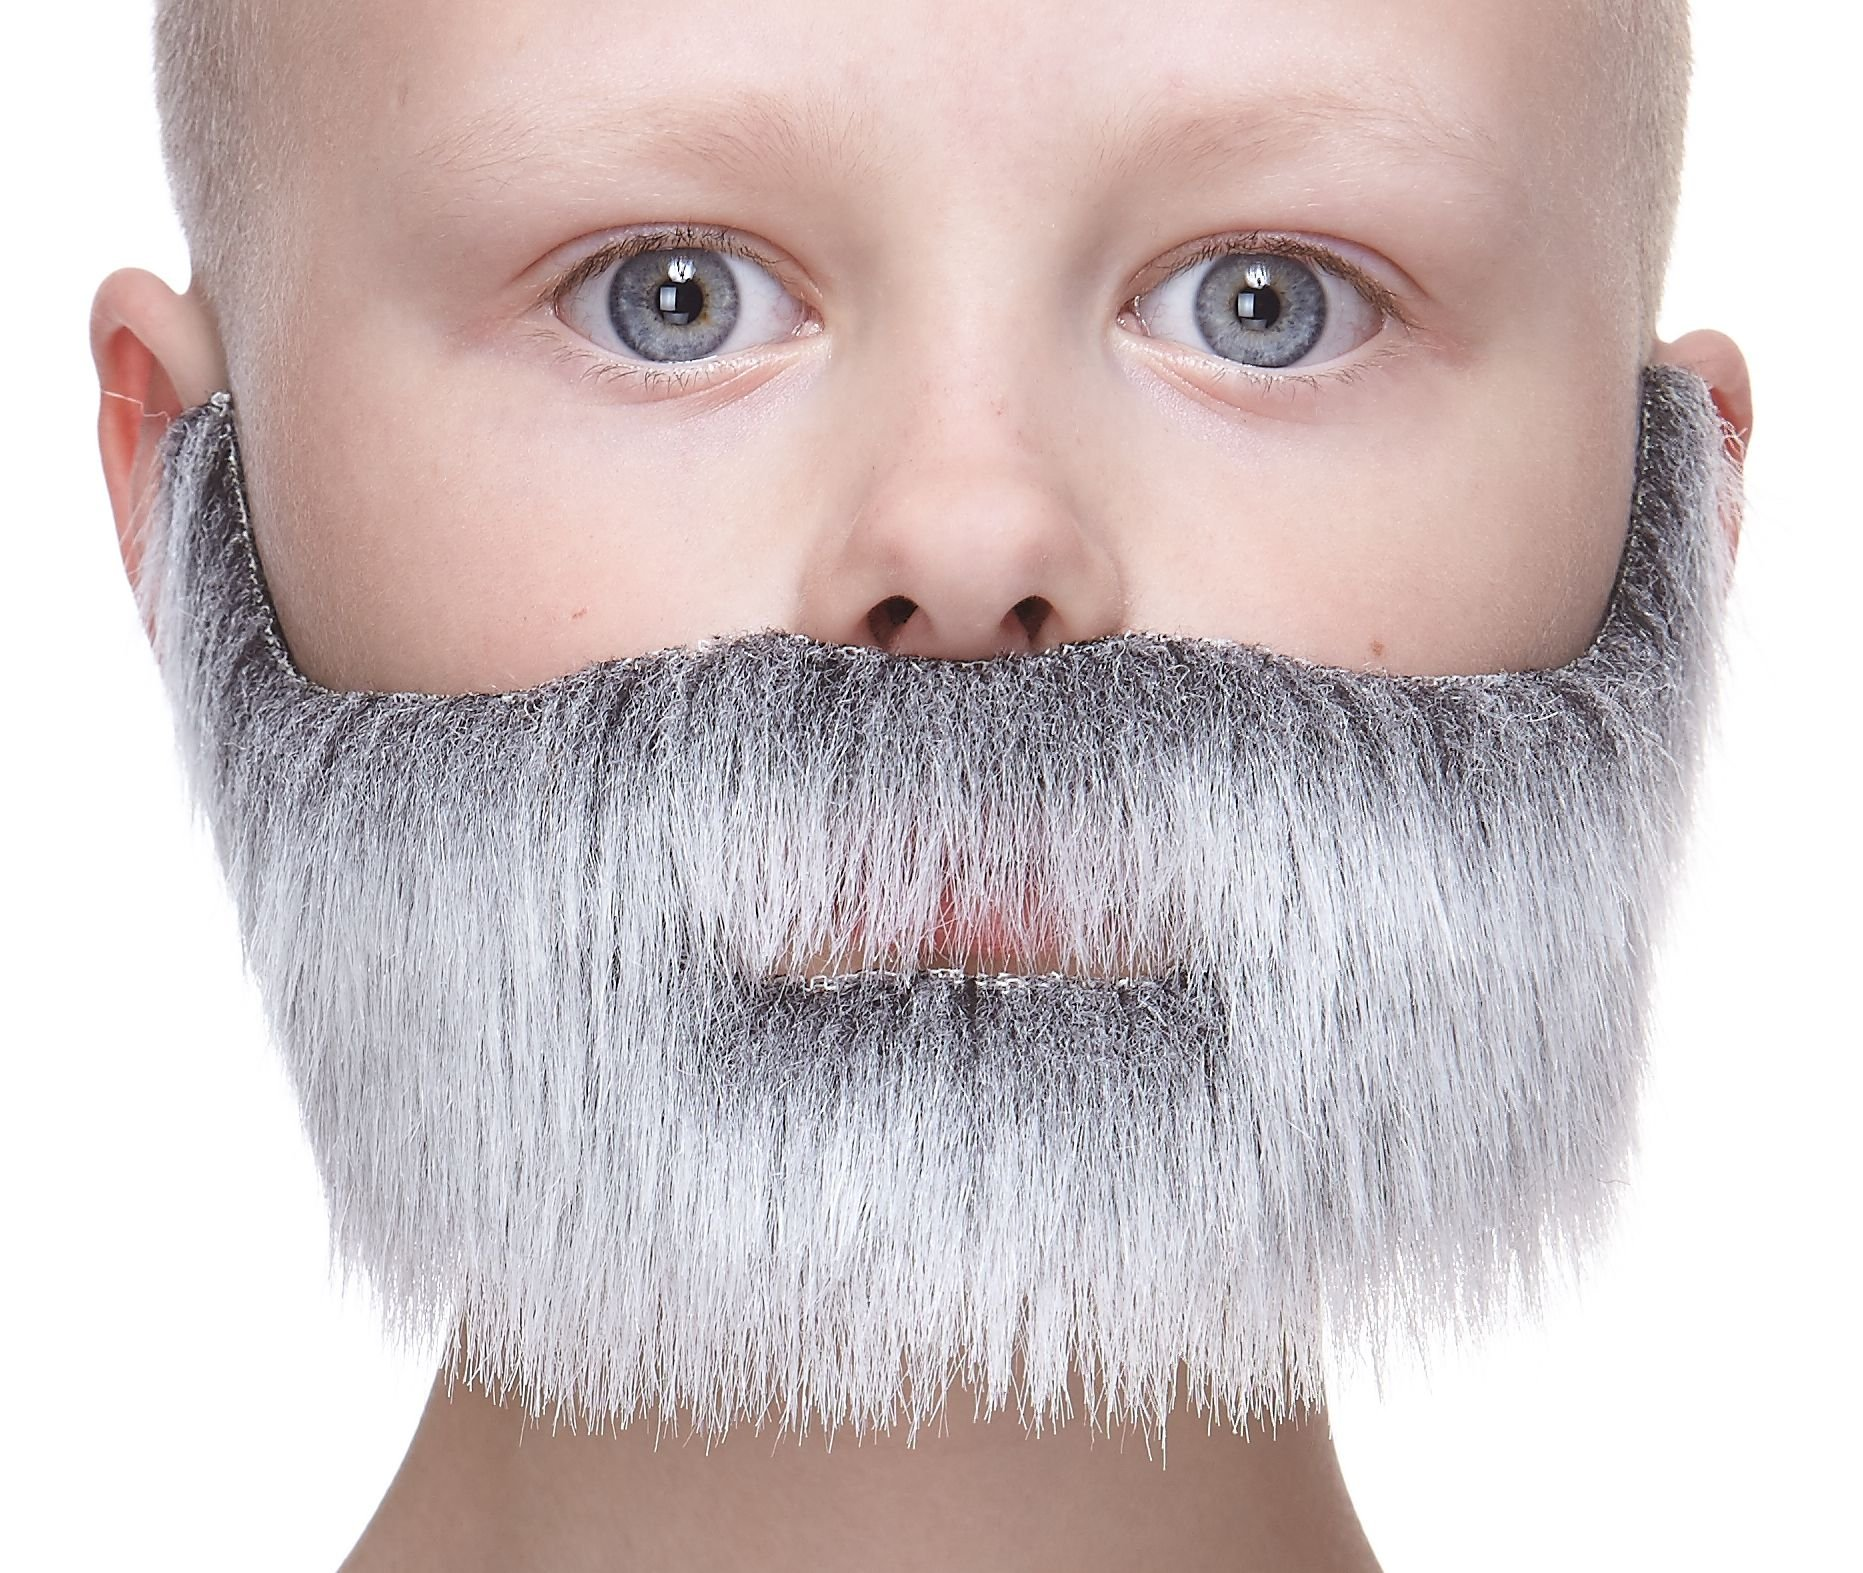 Mustaches Self Adhesive, Novelty, Fake, Small Nobleman Beard, Gray with White Color